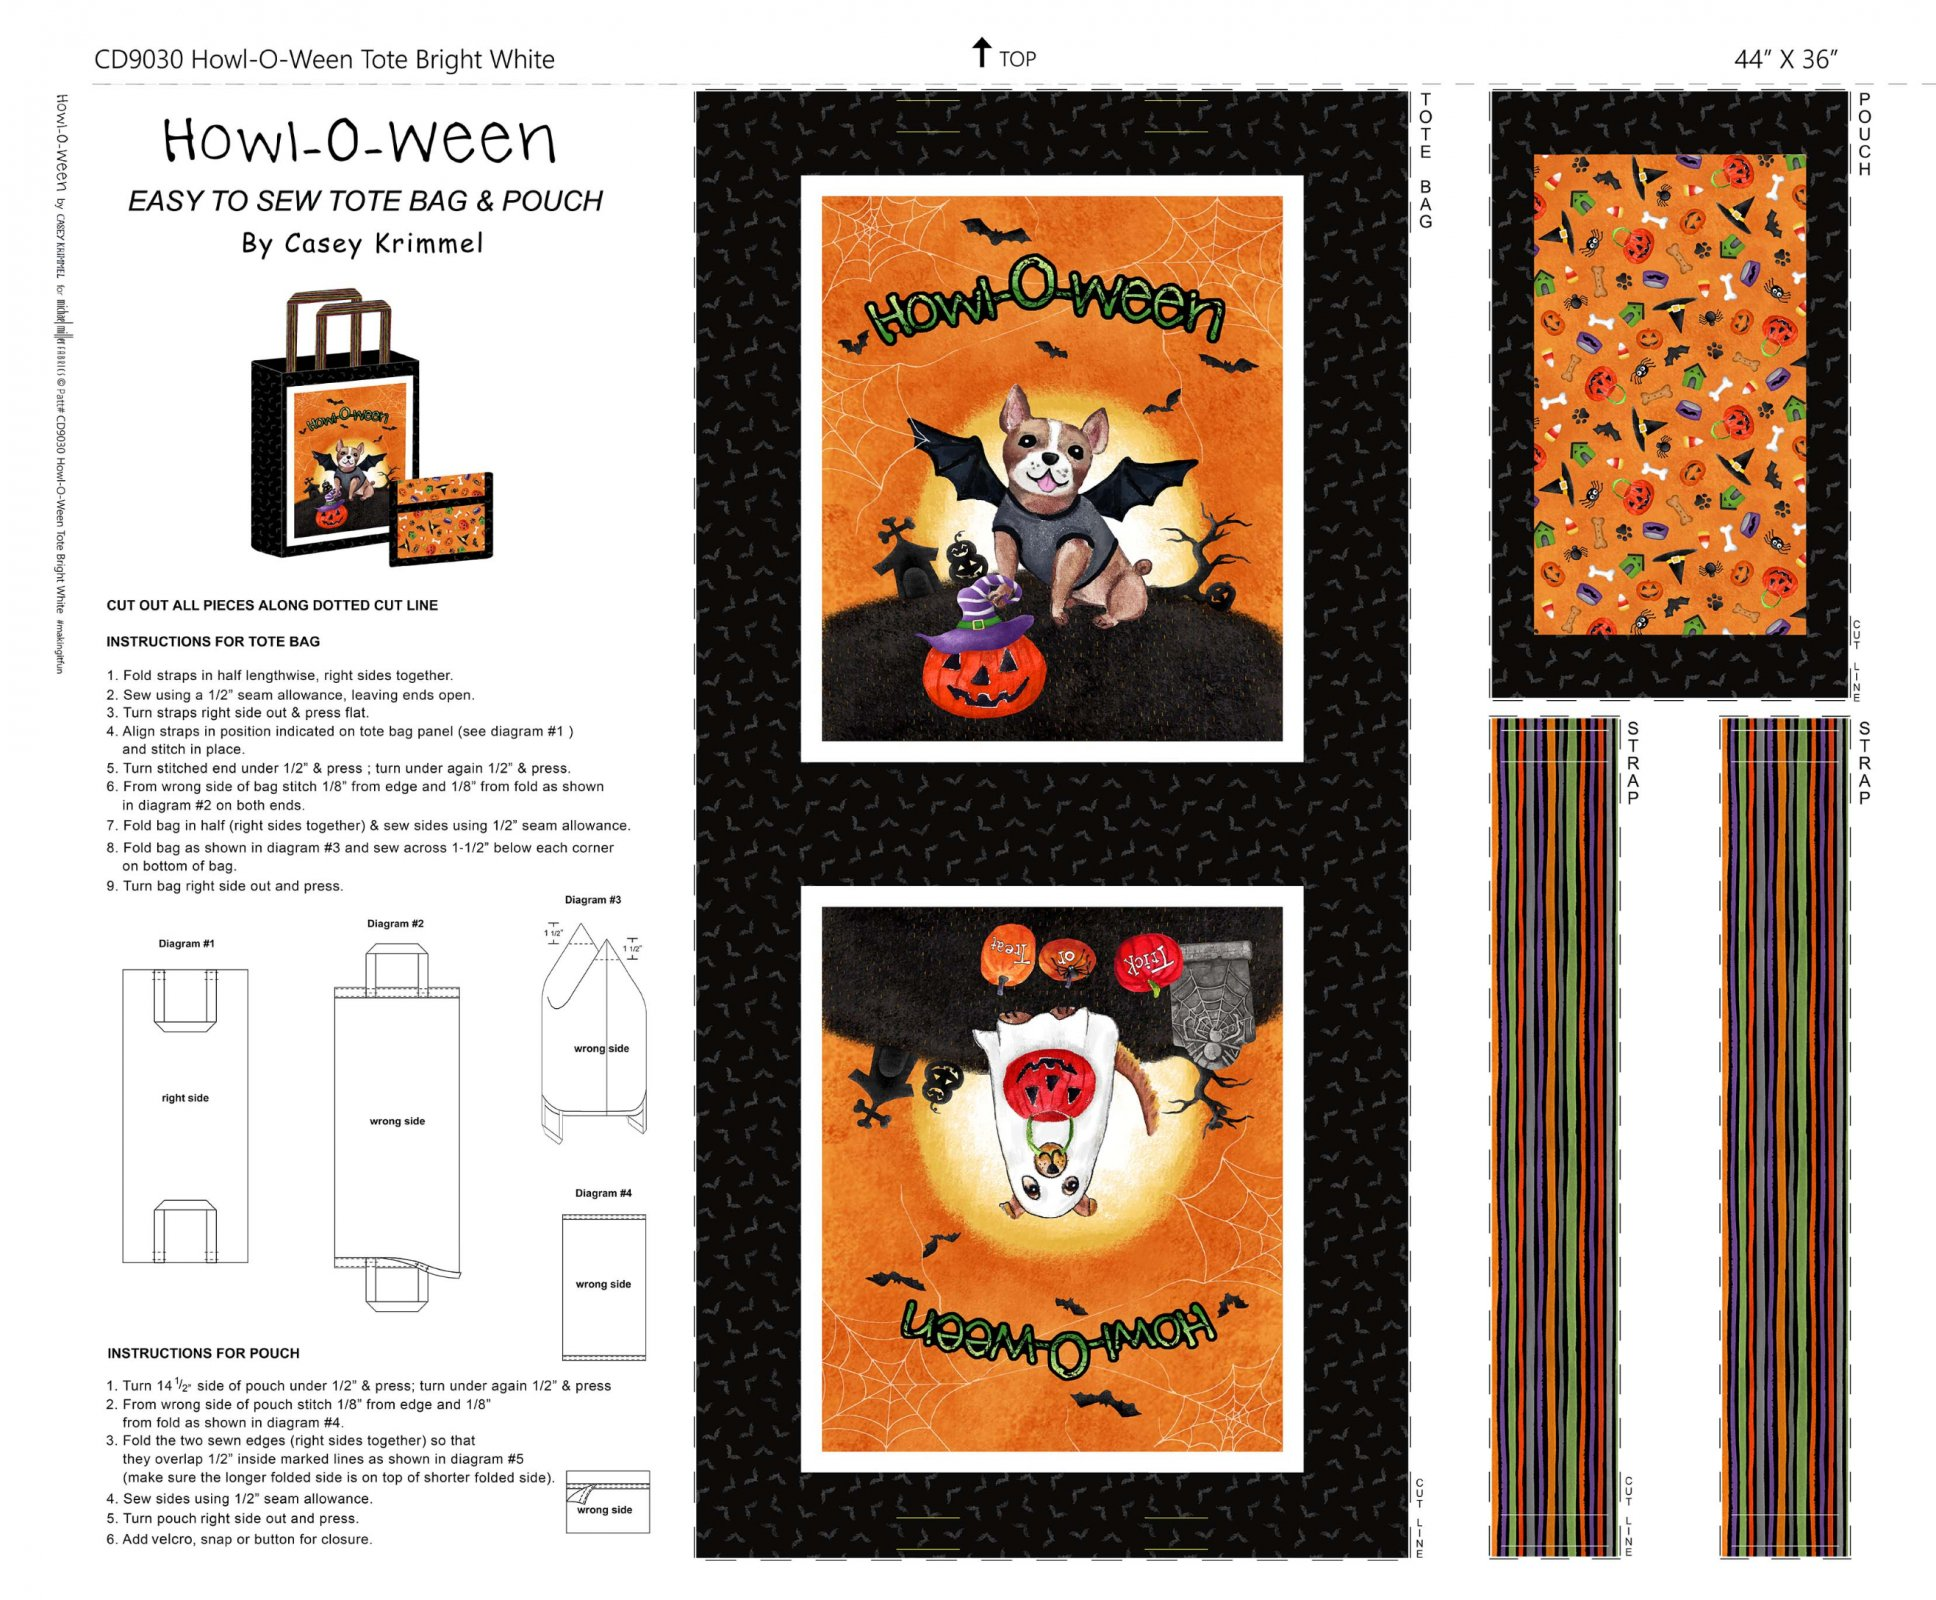 Howl-o-ween Tote On Cotton Duck